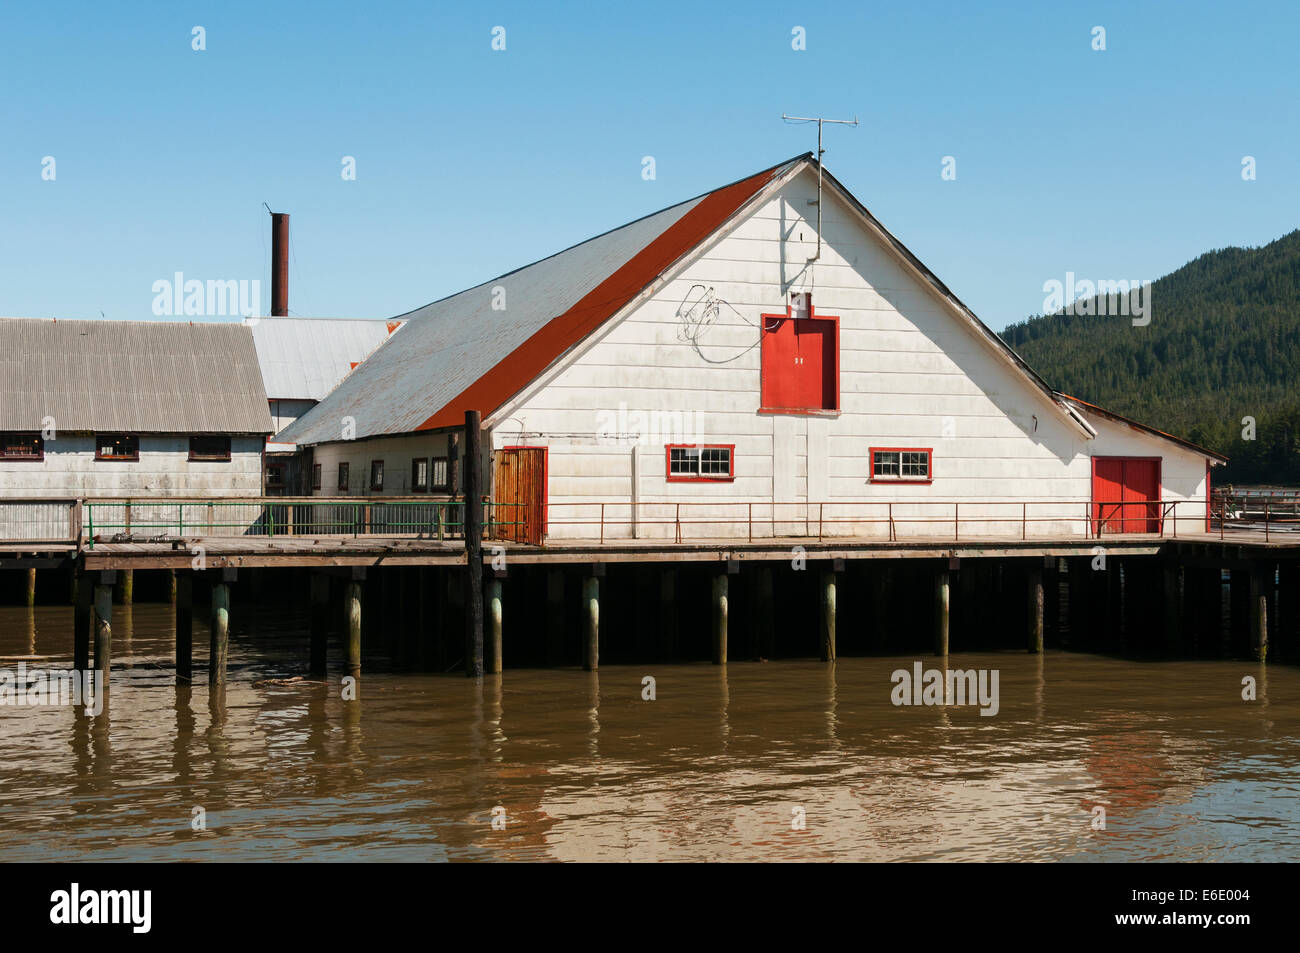 Elk203-4250 Canada, British Columbia, Port Edward, North Pacific Cannery National Historic site, cannery building - Stock Image